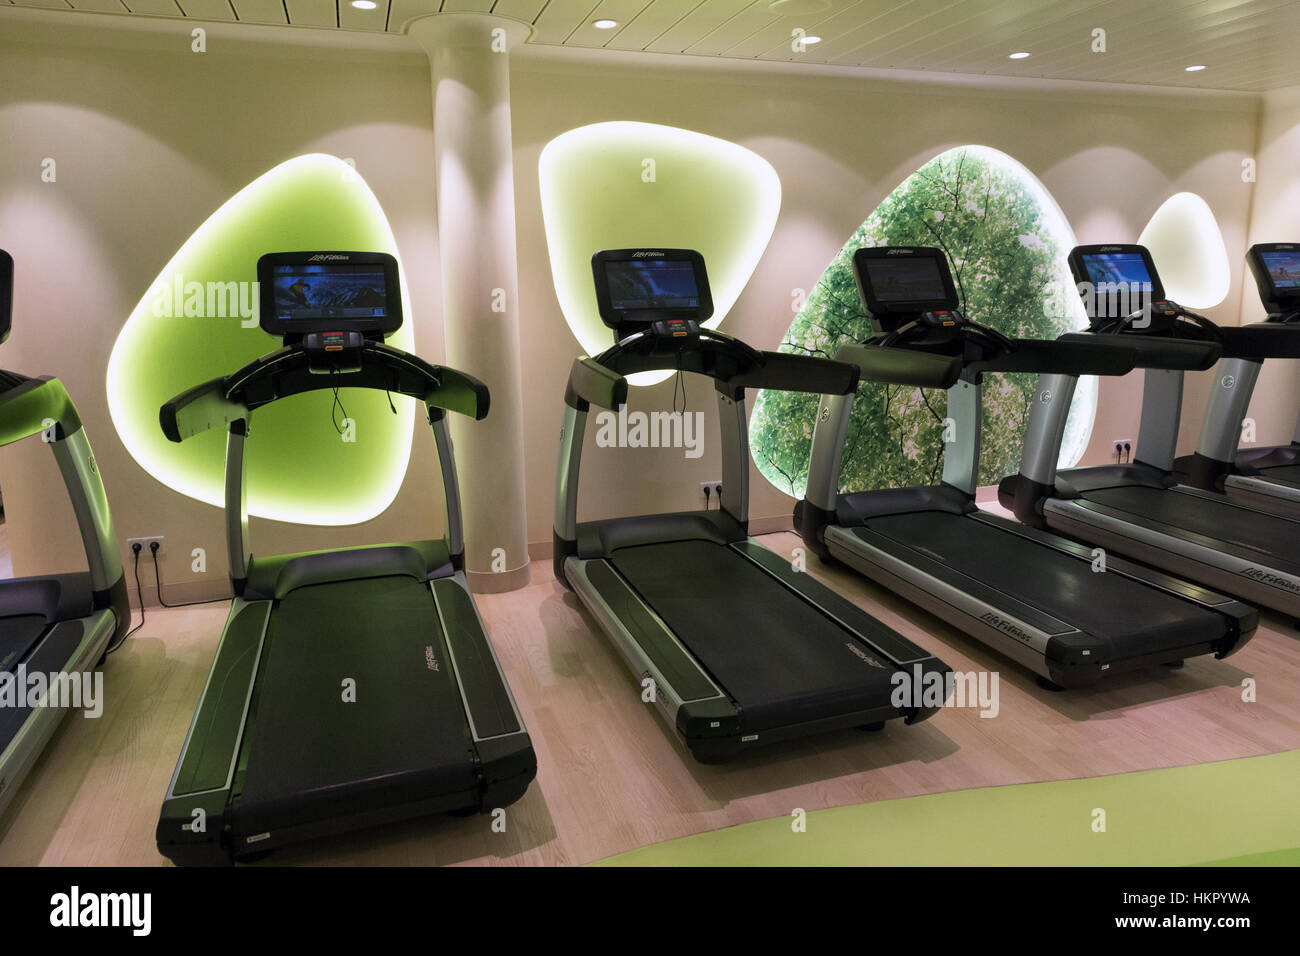 ROTTERDAM - NOV 24, 2016: Row of treadmills in the fitness center on board of the AIDAprima cruise ship. - Stock Image